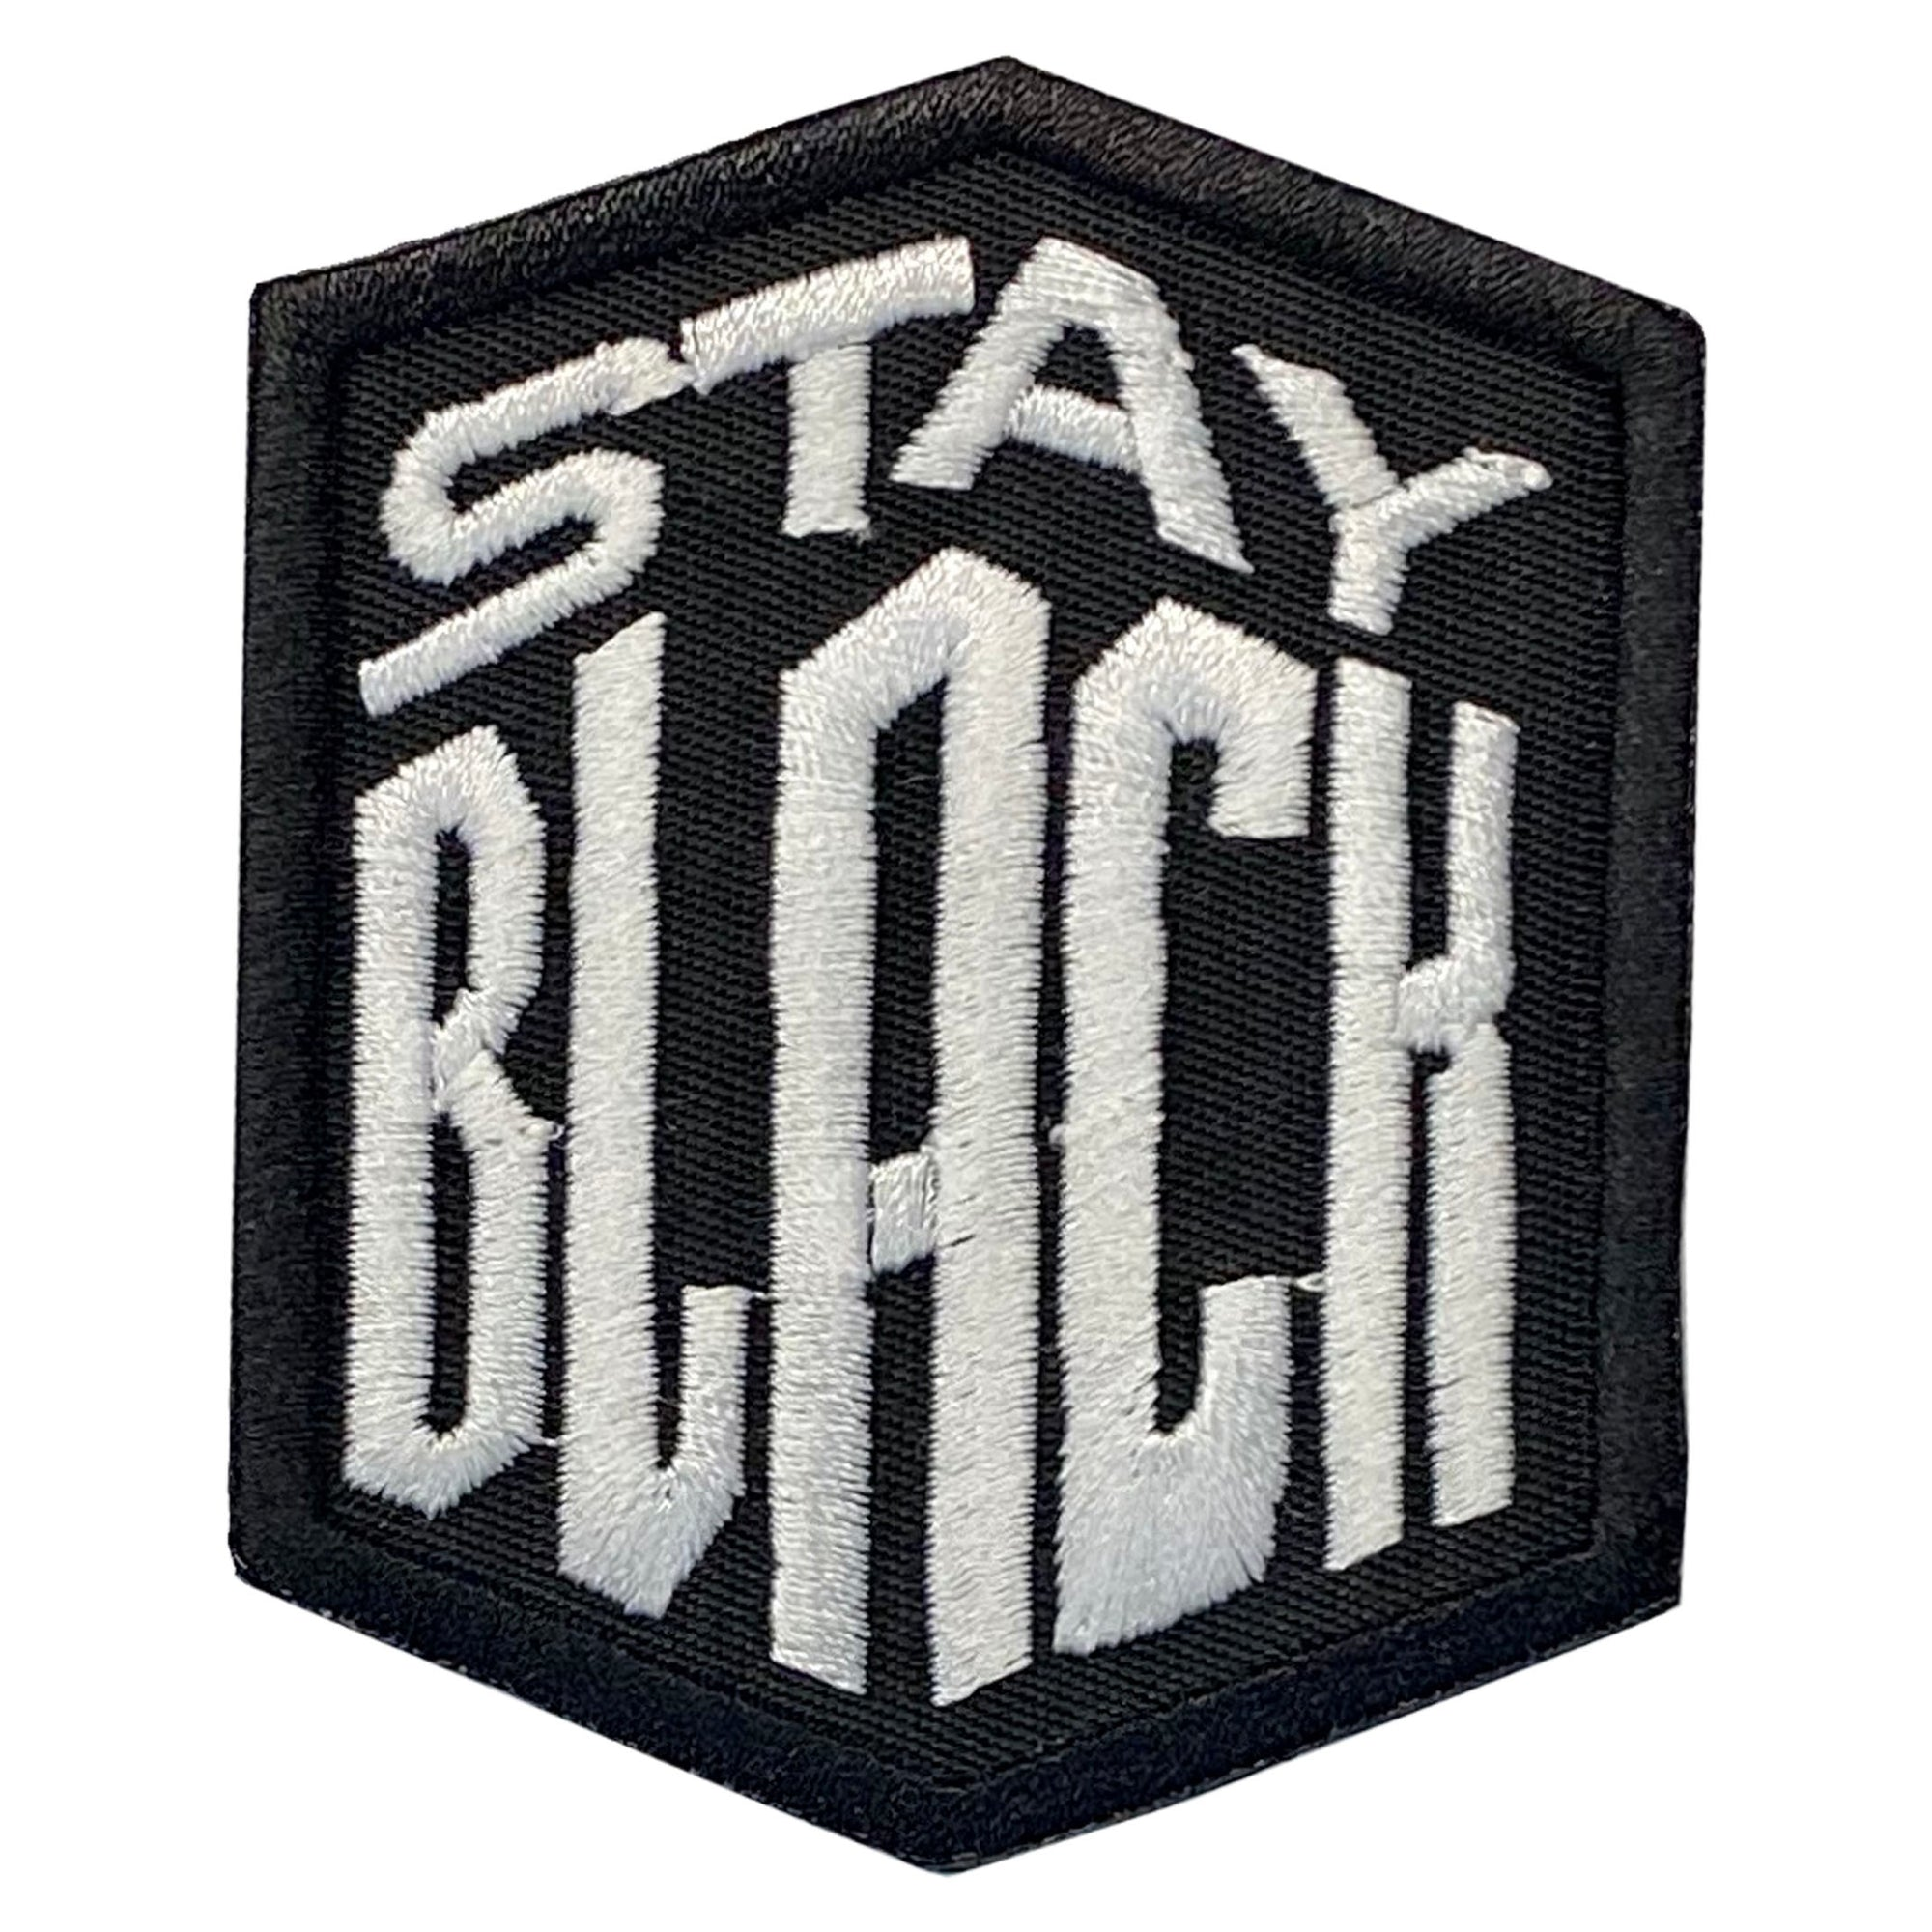 Stay Black Patch - The Carter Brand - Black By Popular Demand - Rooting For Everybody Black - Black Pride Apparel